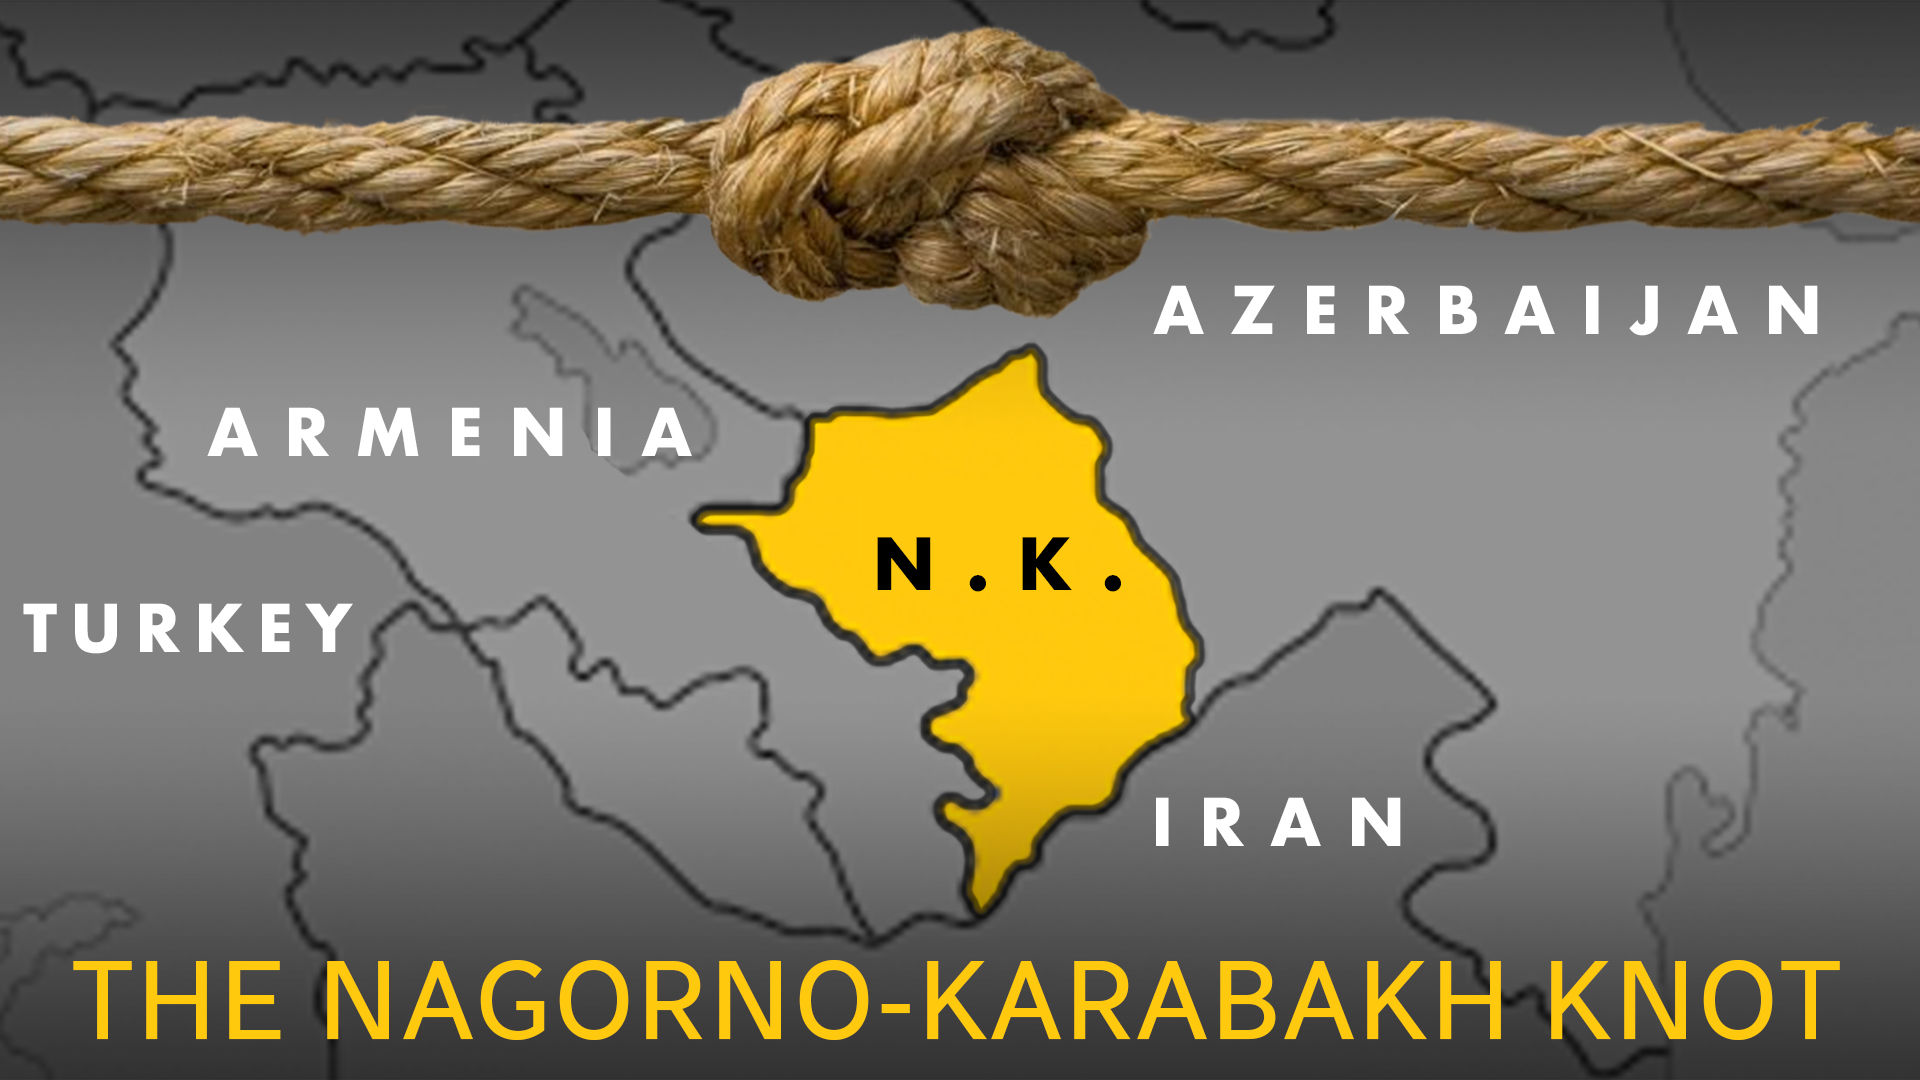 """the text """"THE NAGORNO-KARABAKH KNOT"""" and the image of a knot over a map of the N.K. region with Armenia, Azerbaijan, Turkey and Iran"""